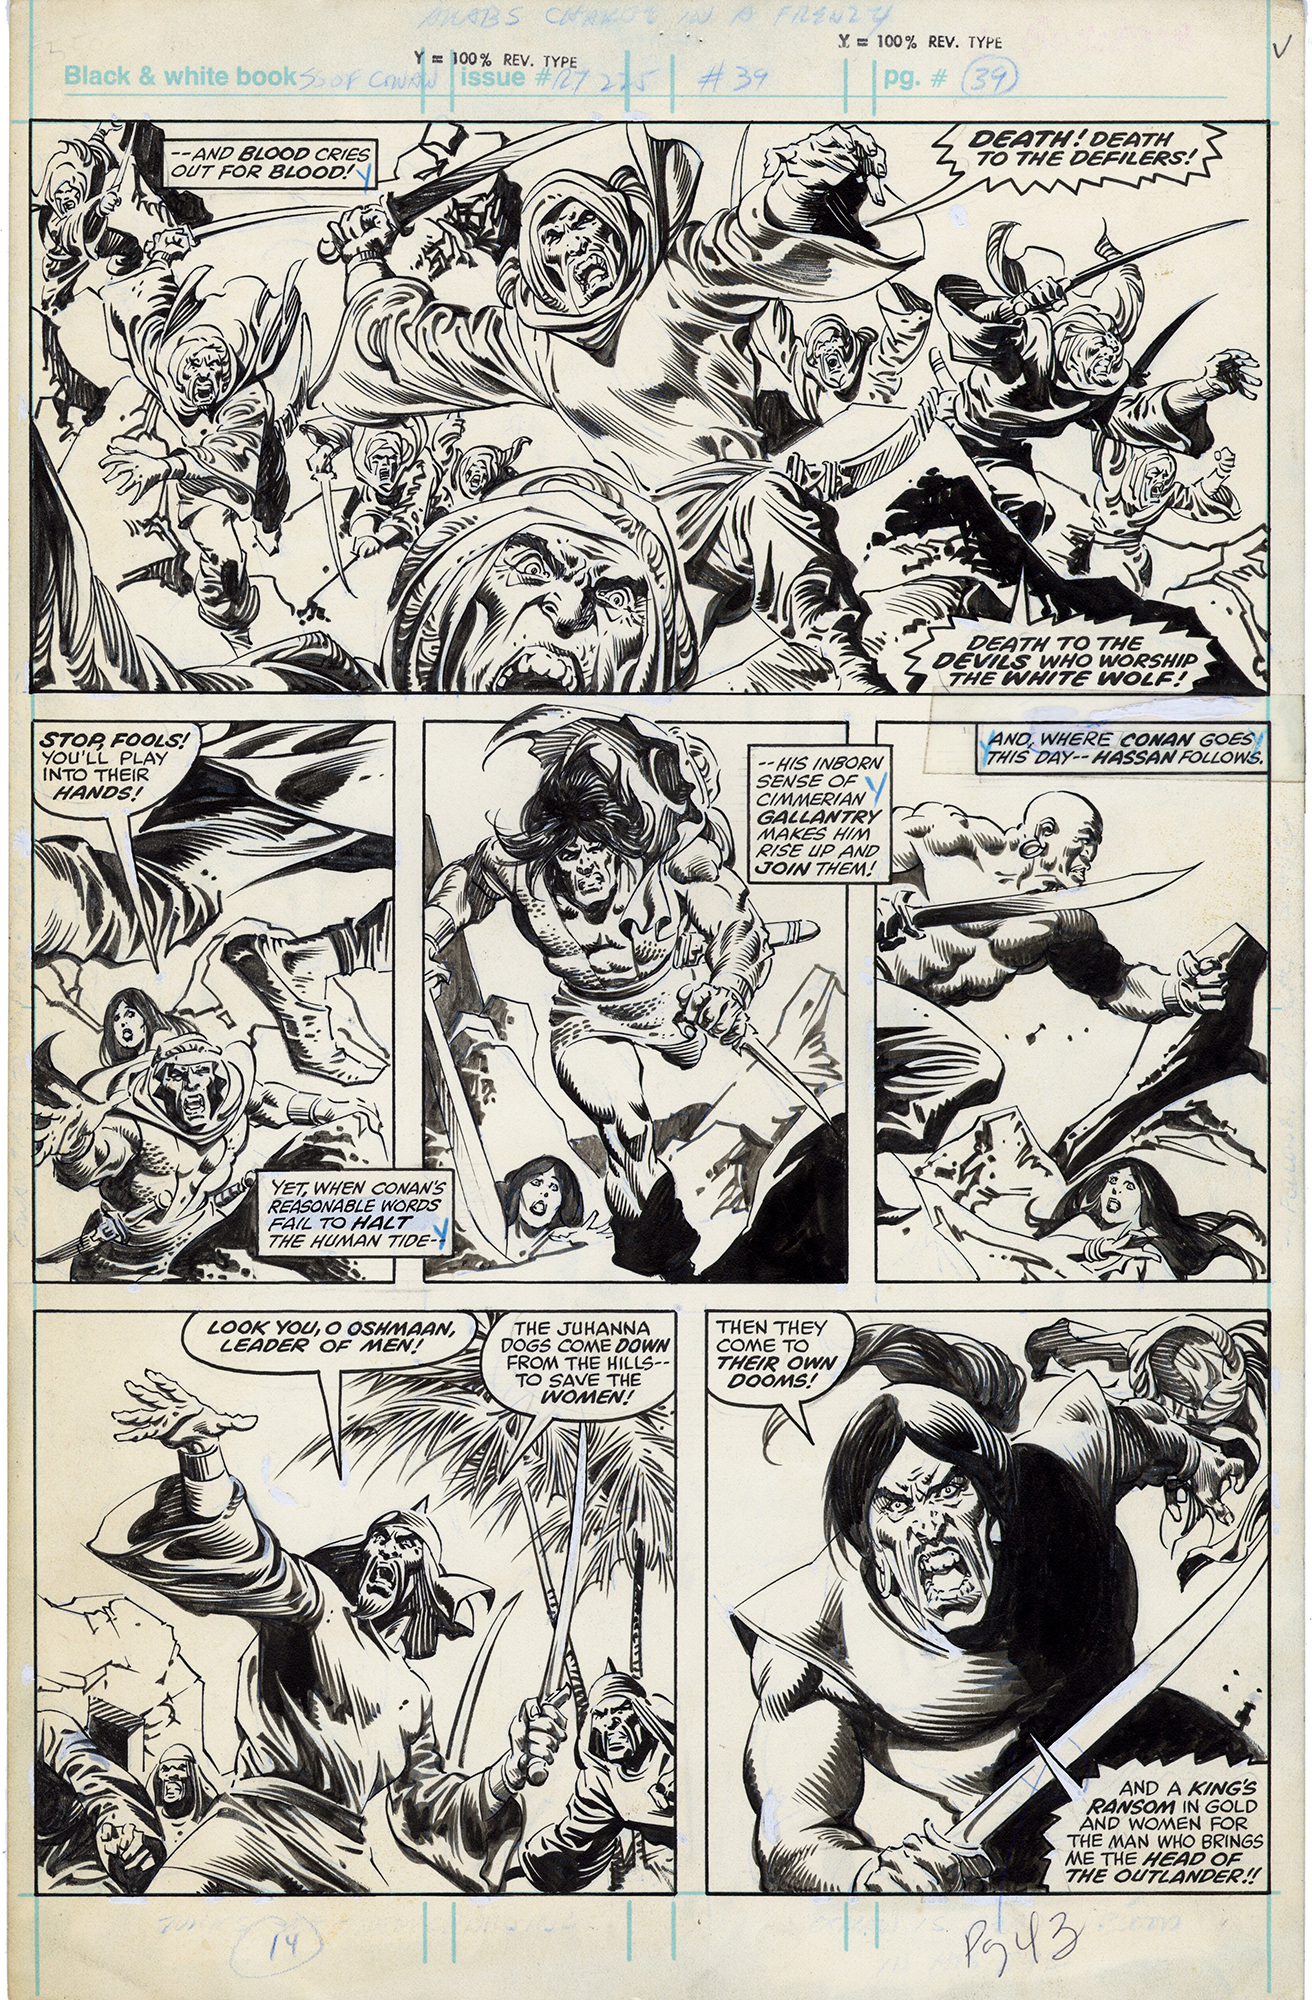 Savage Sword of Conan #37 p43